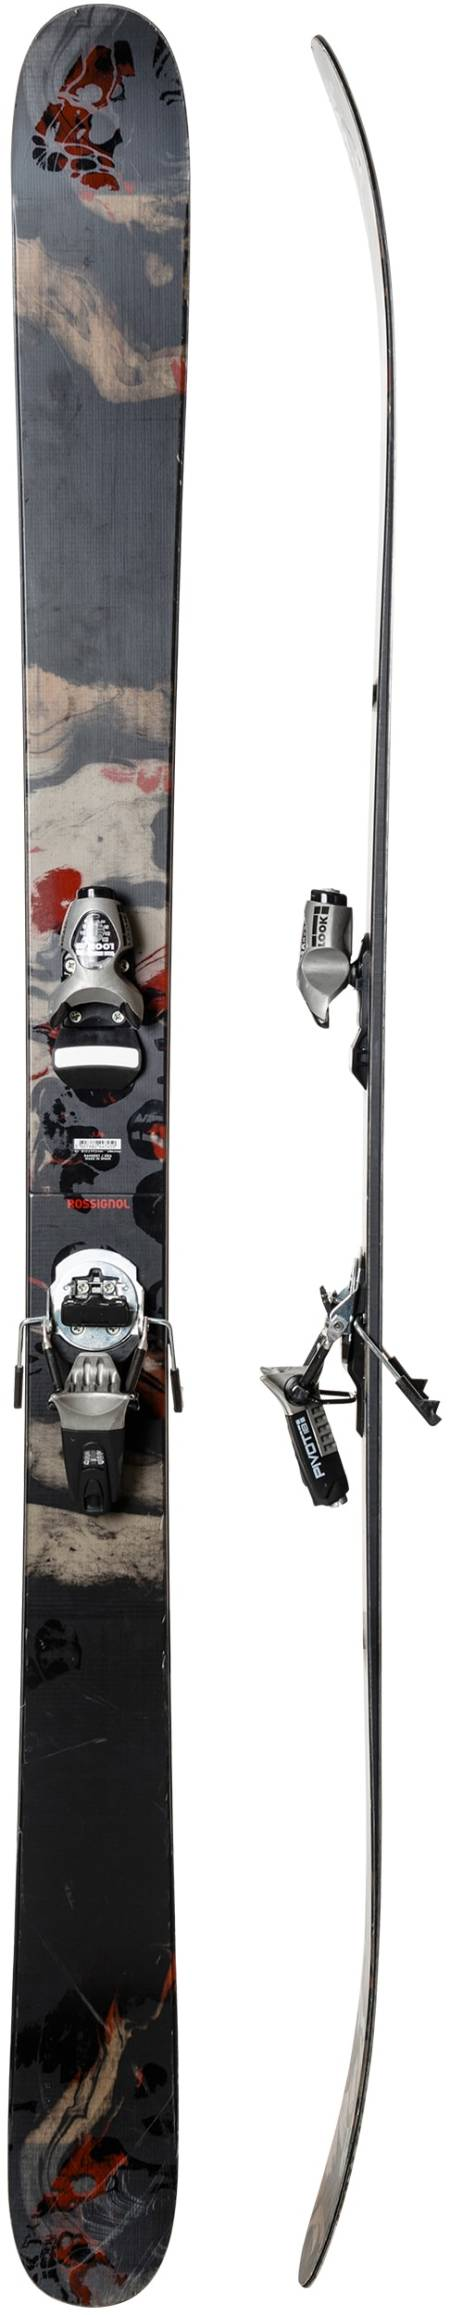 Test av Rossignol Black Ops